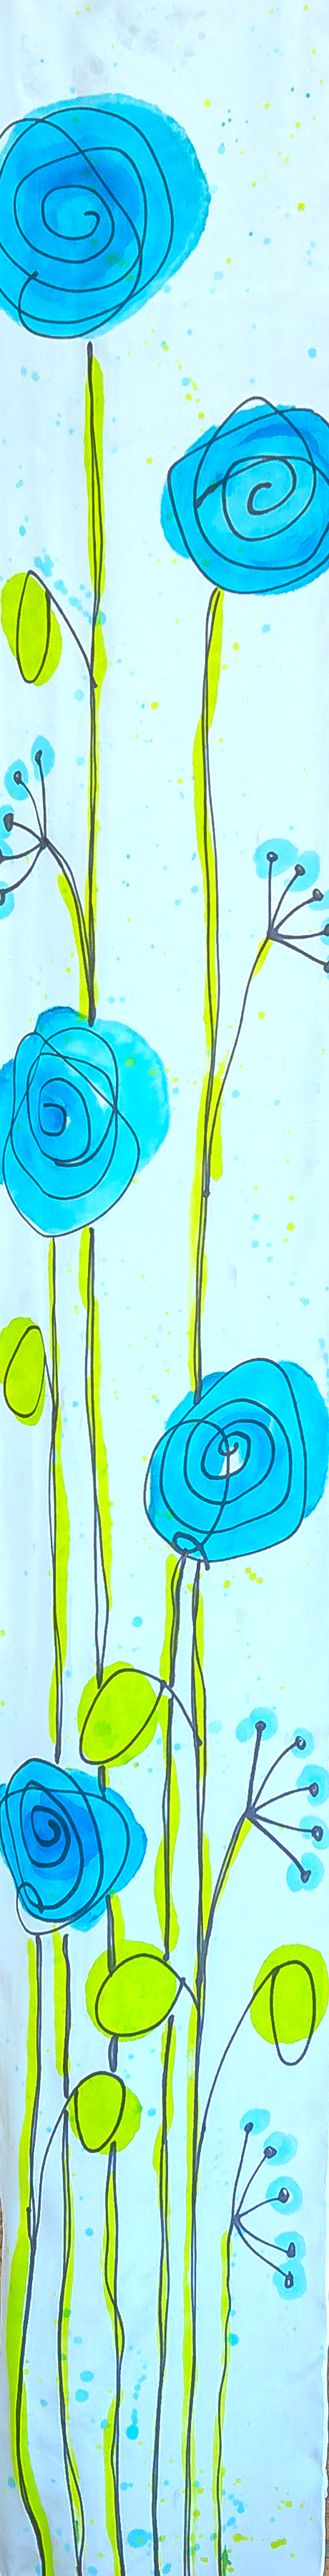 "Blue Poppies 8""x54"" $75"